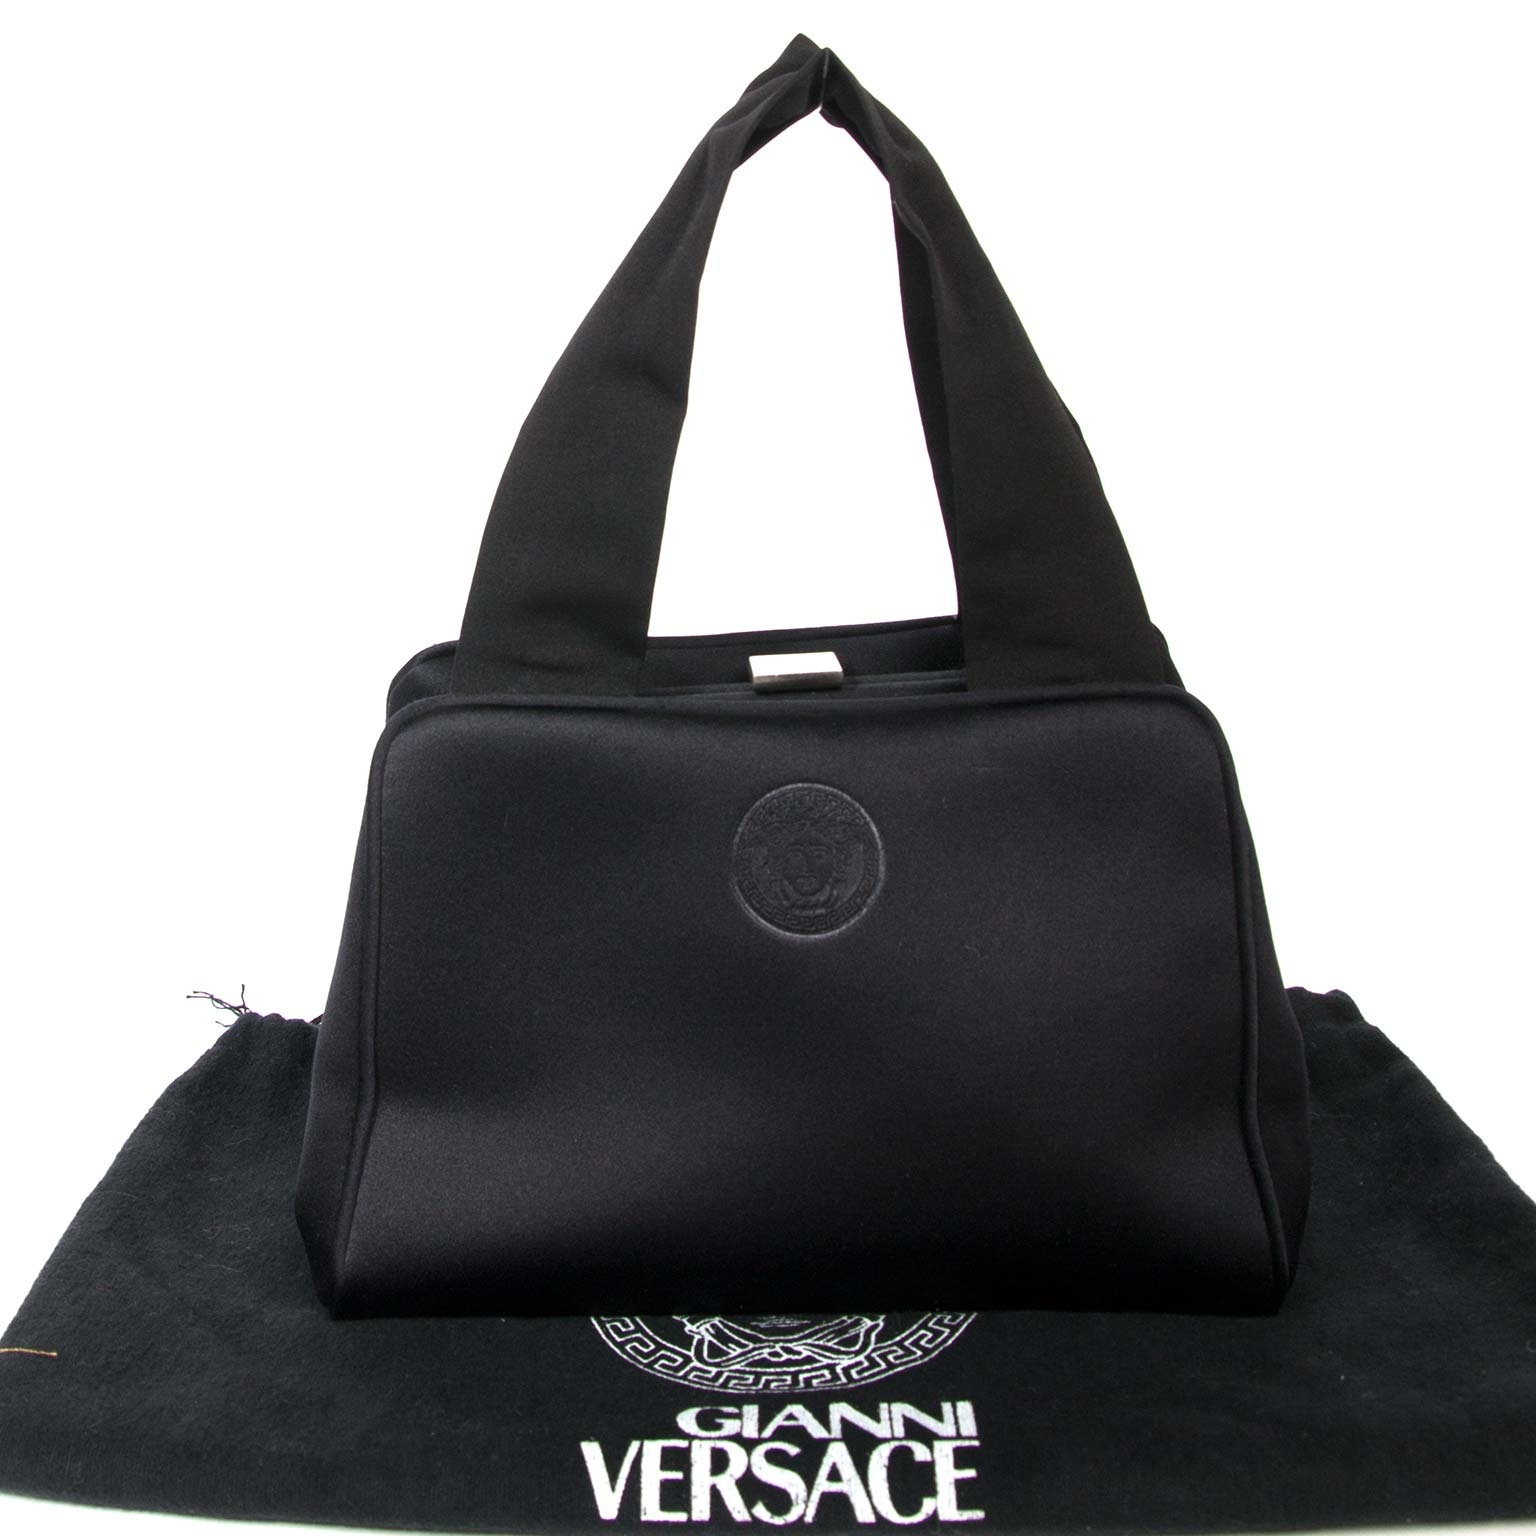 acheter en ligne seconde main Versace Small Black Satin Bag